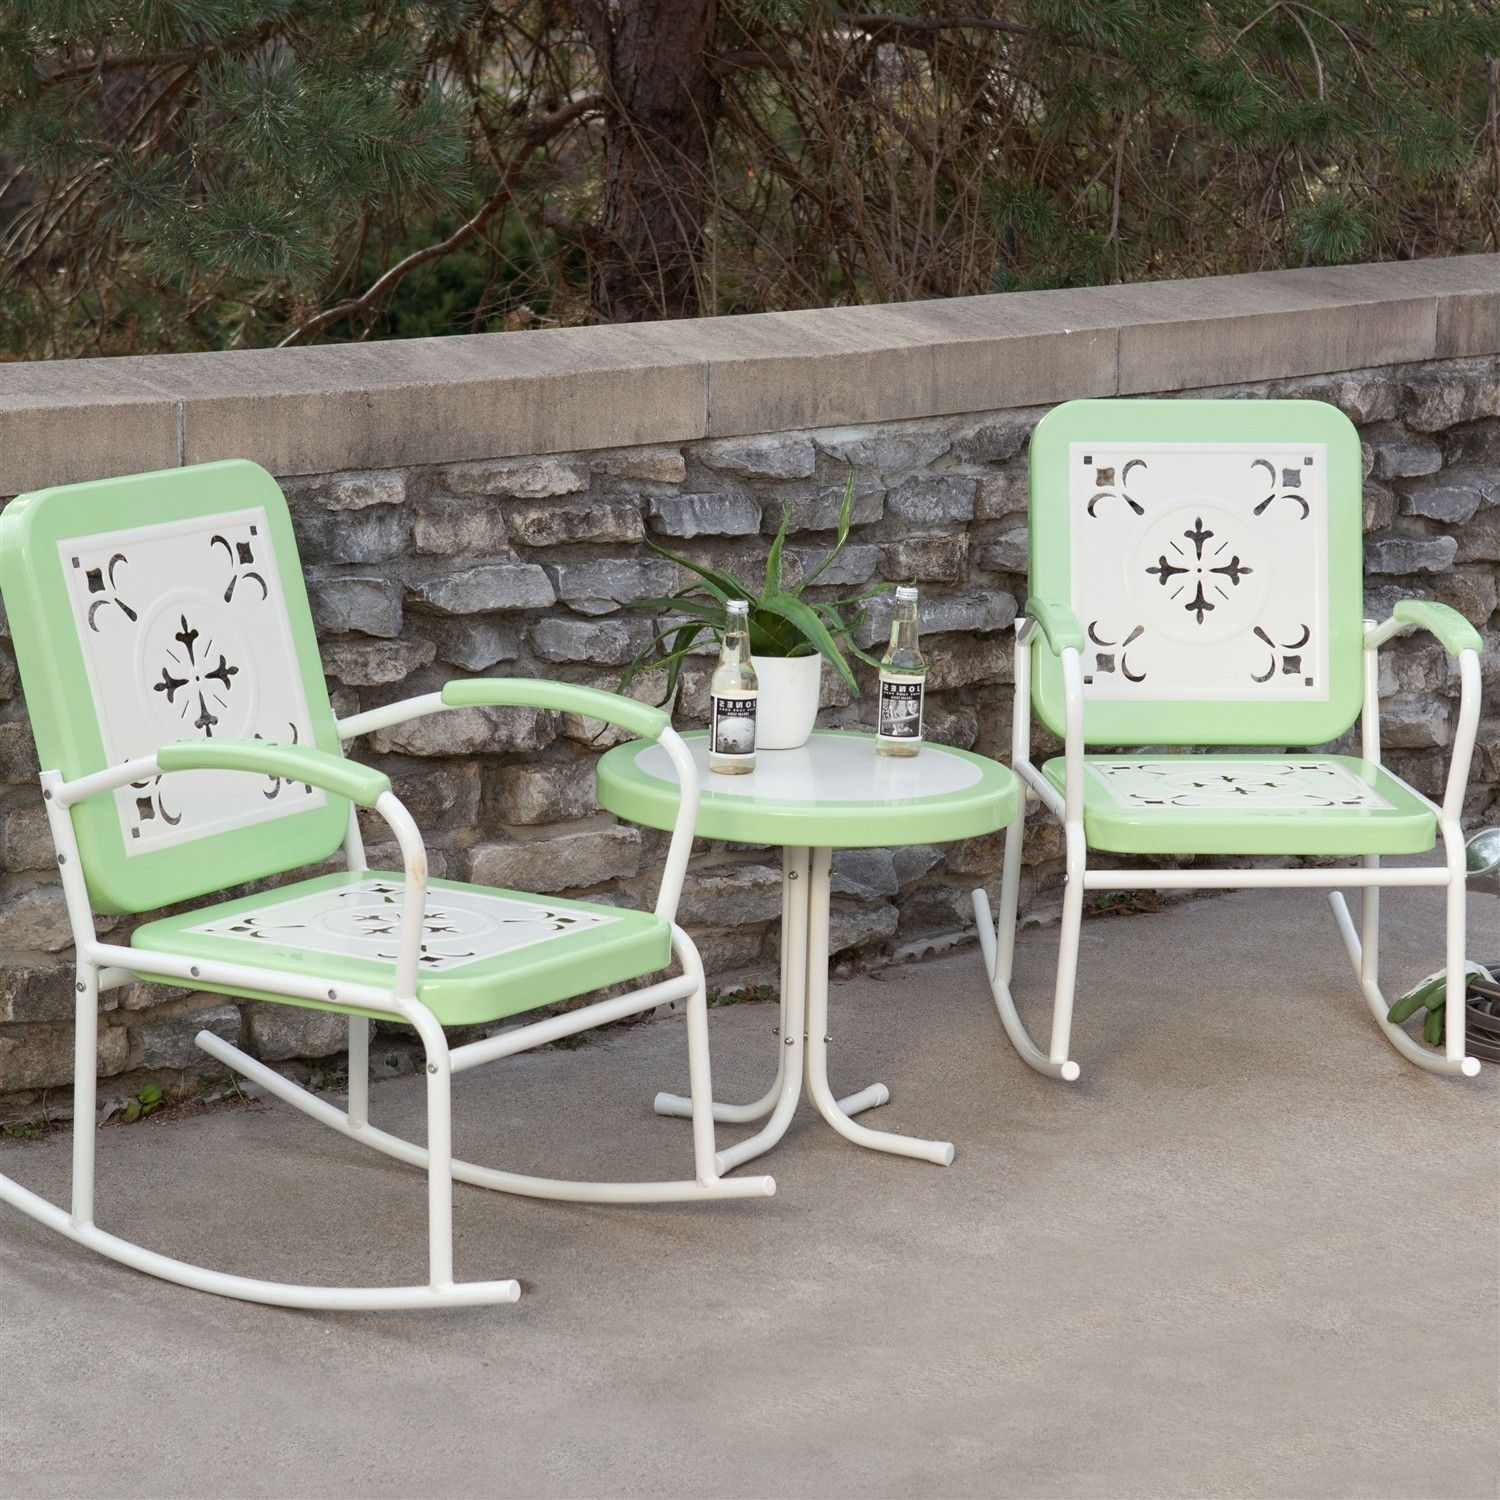 Inspiration about Mint Green Retro Patio 3 Piece Metal Rocker Rocking Chair Set | New With Regard To Outside Rocking Chair Sets (#6 of 15)